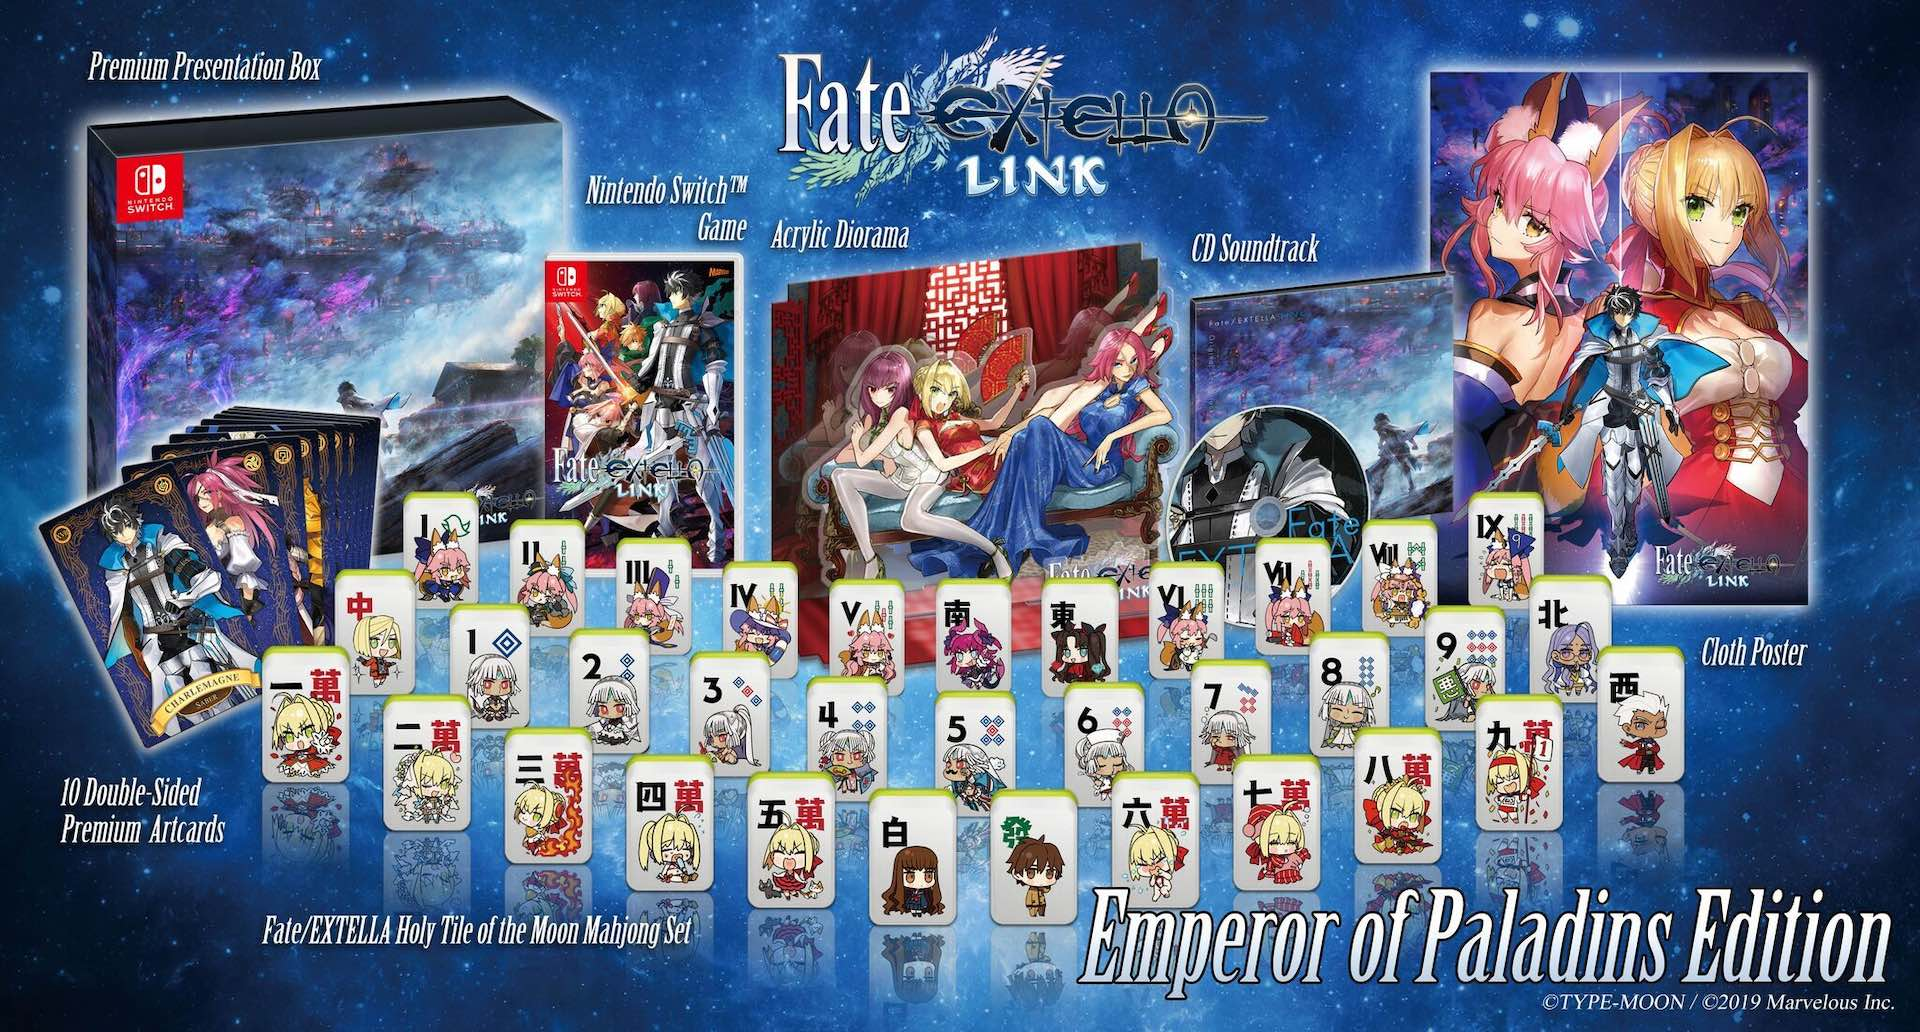 Fate/EXTELLA LINK Emperor of Paladins Edition Photo